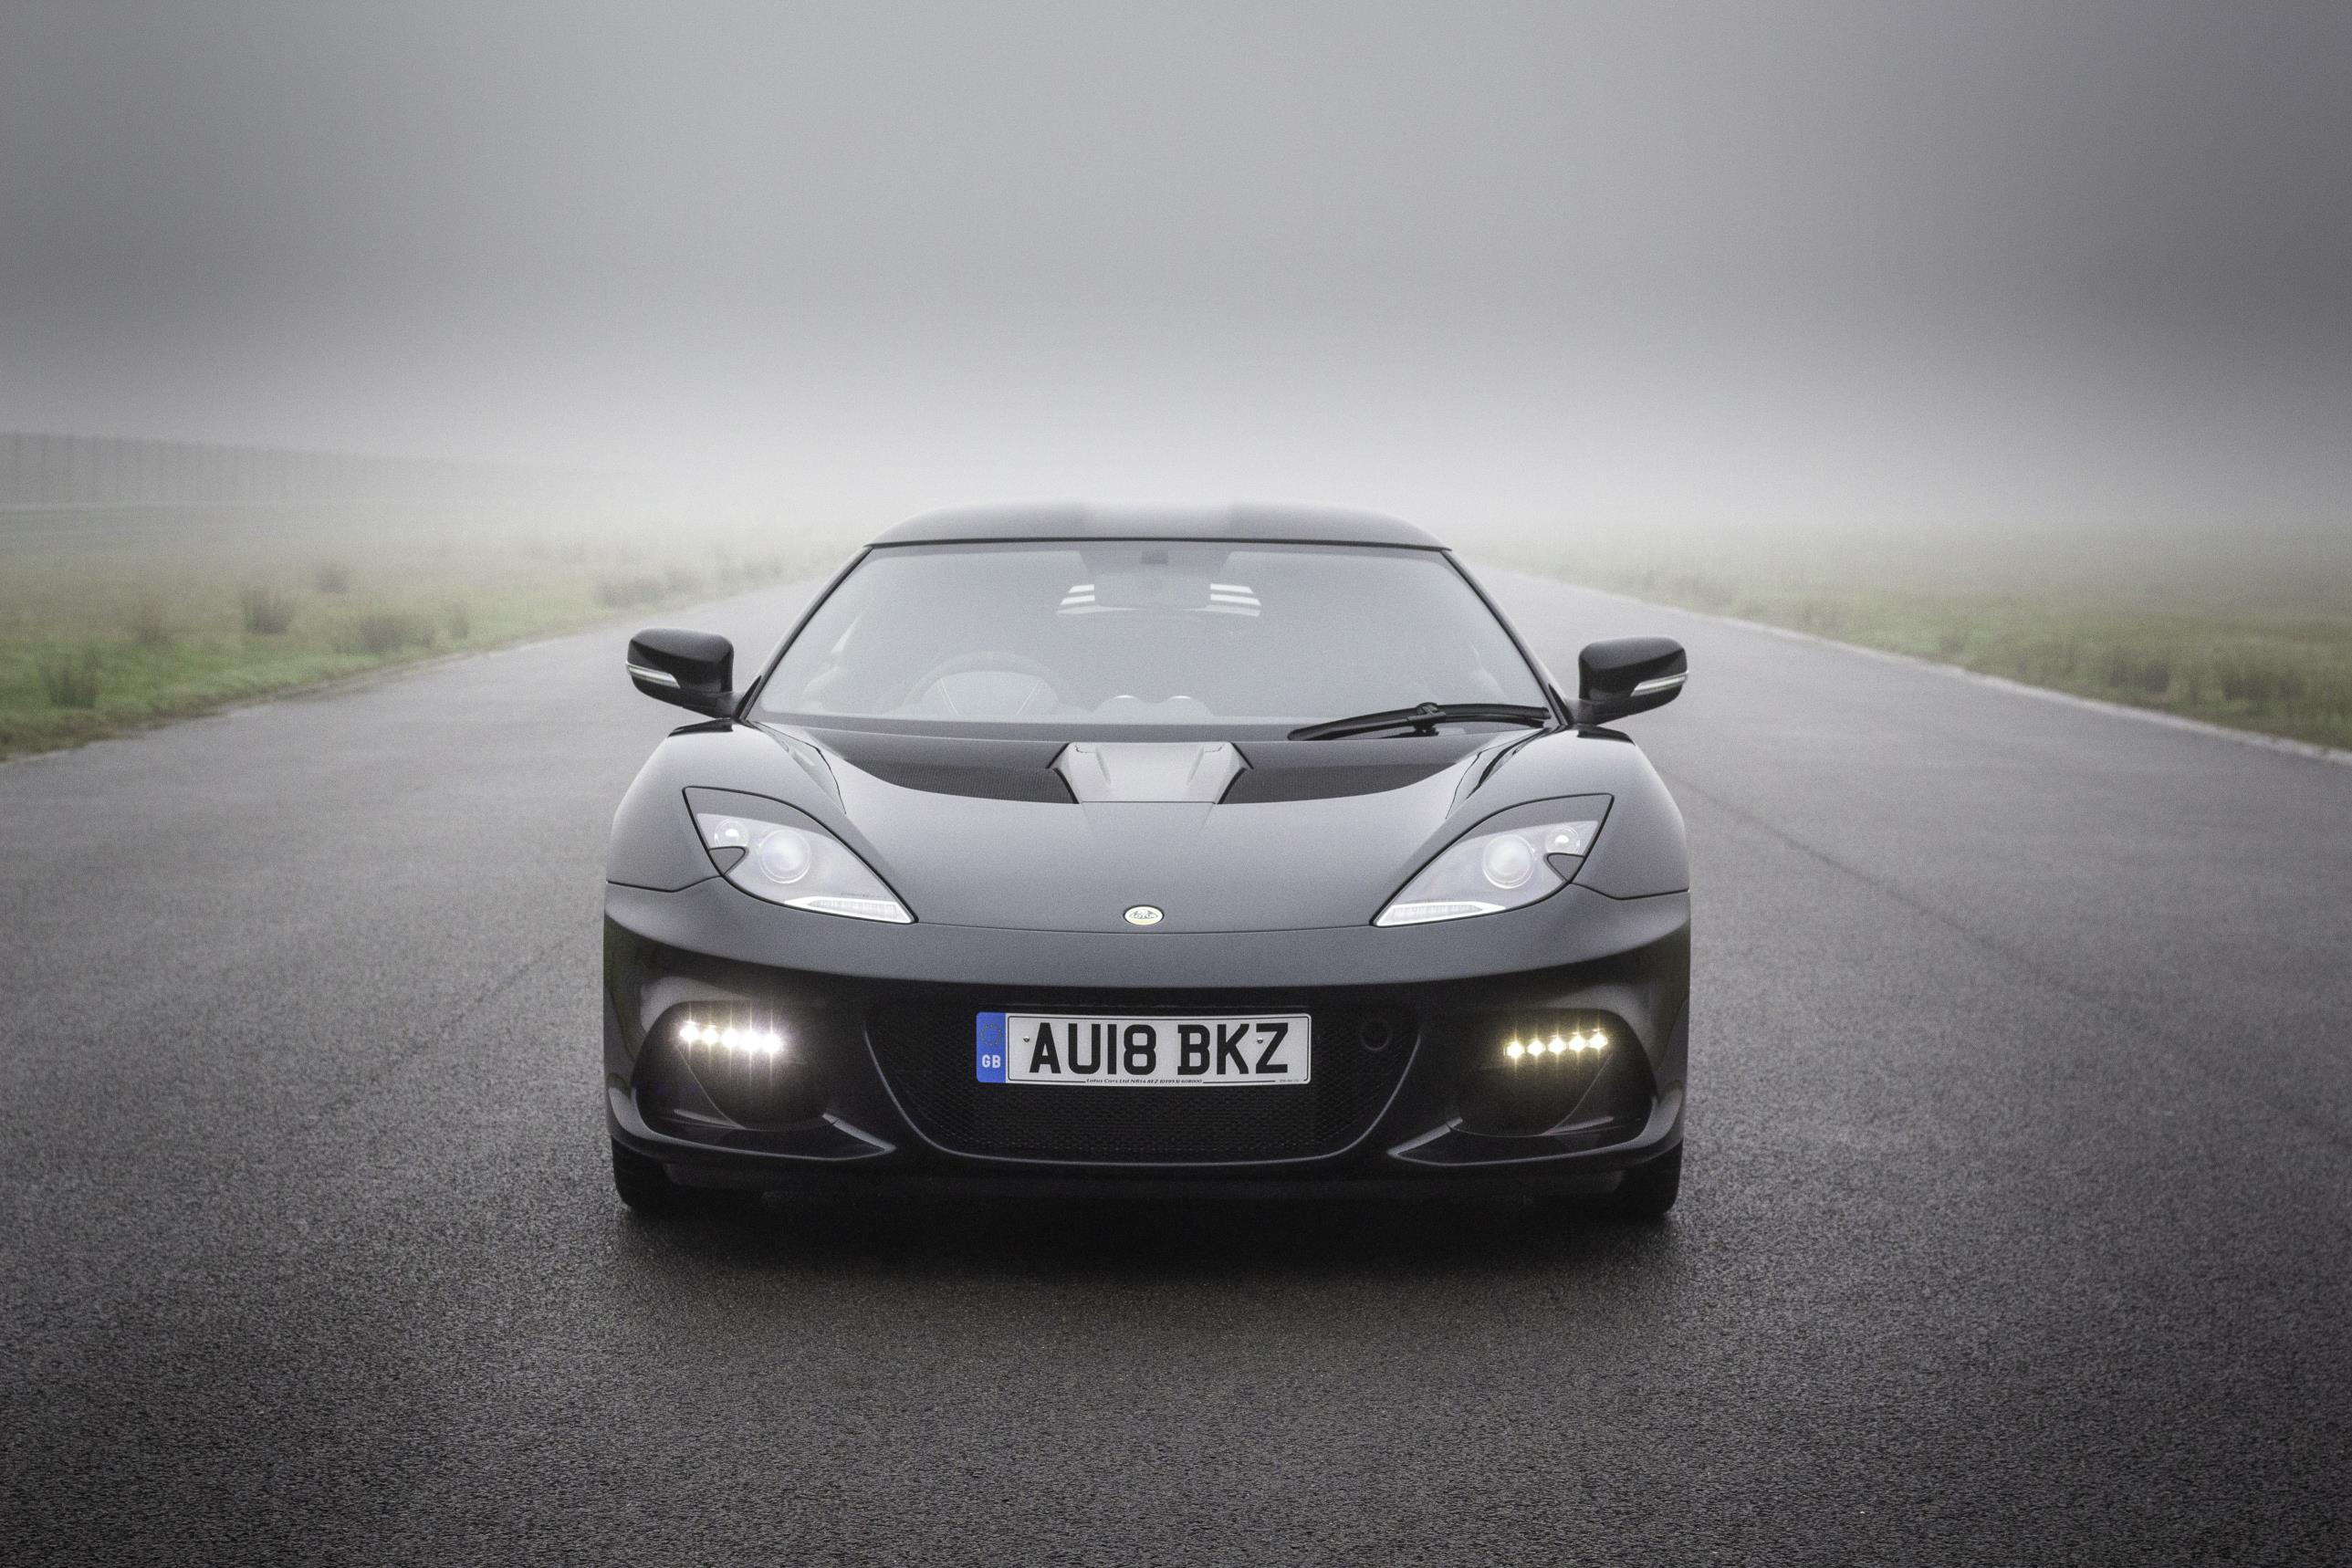 David is hoping for Lotus involvement in greener motoring - and more cars like the Evora